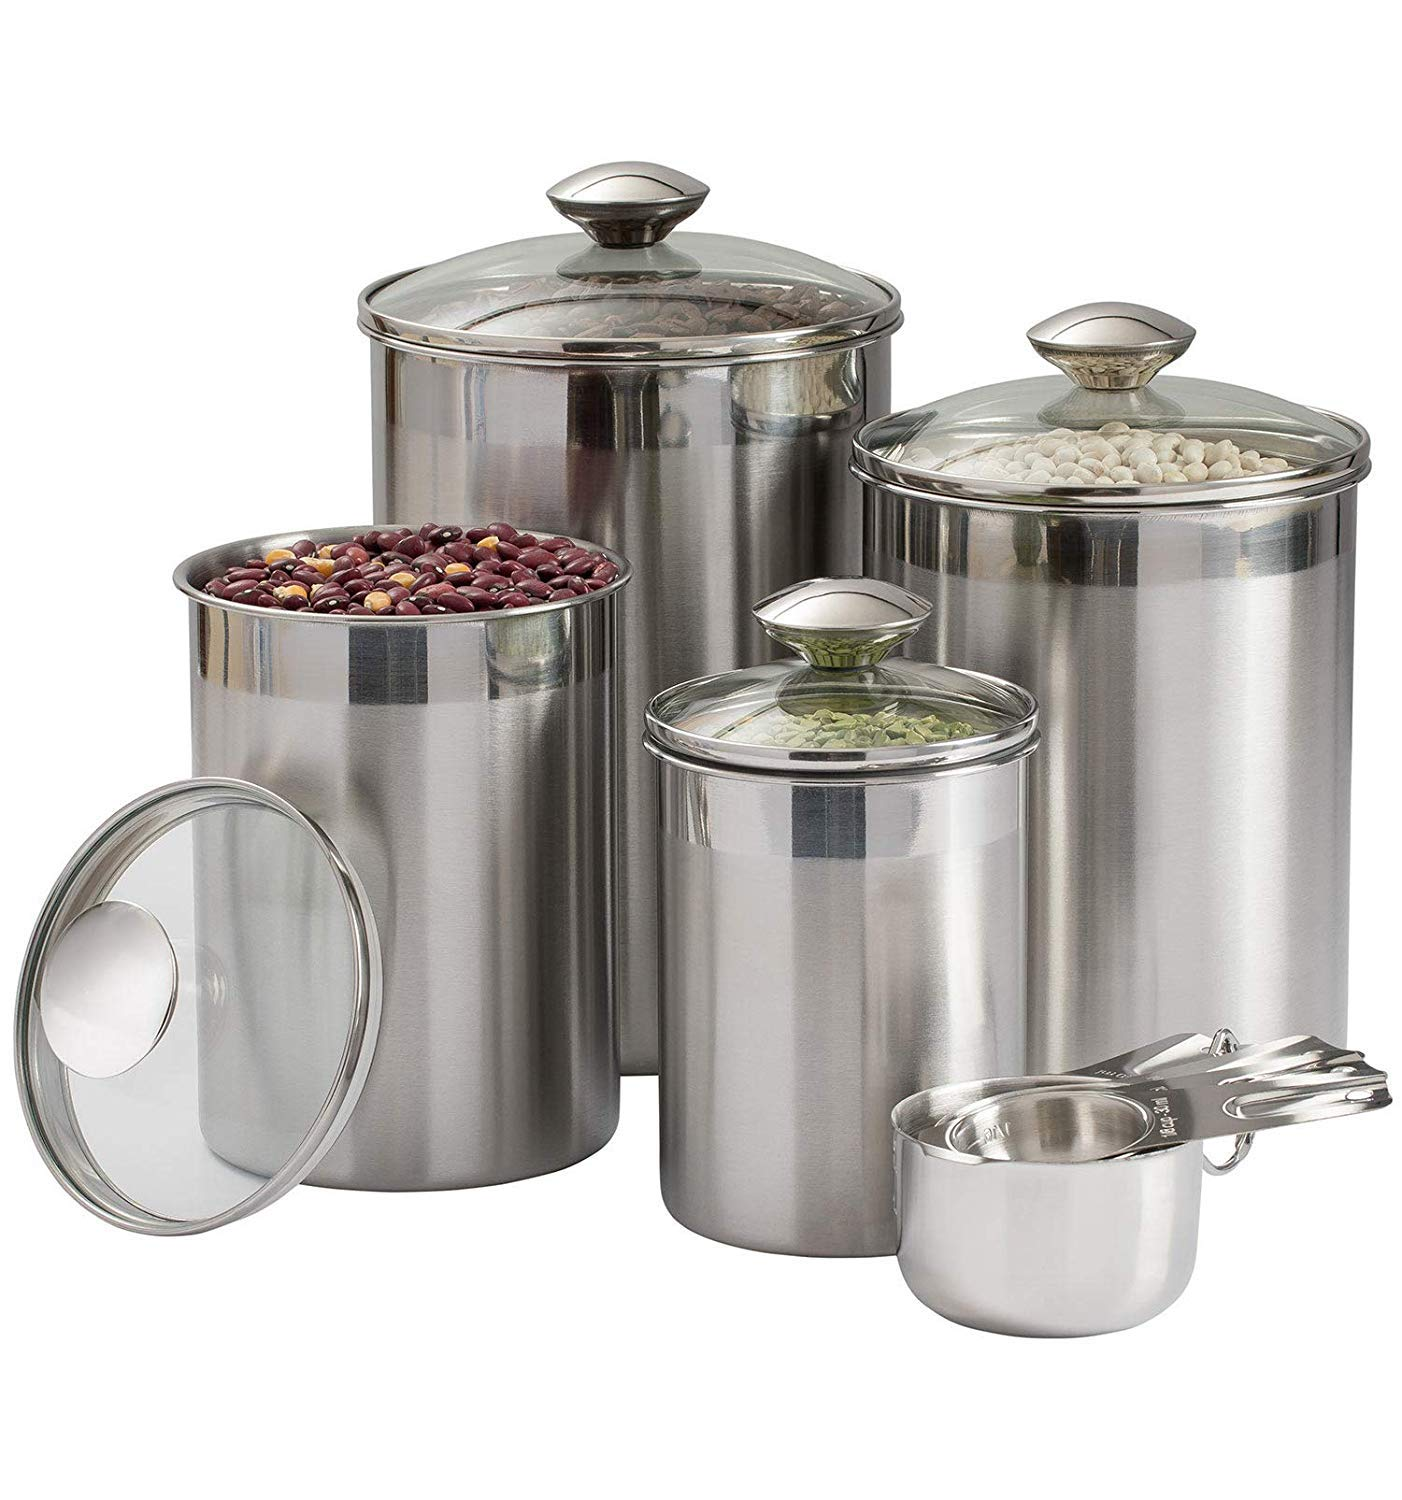 stainless steel canister sets kitchen beautiful canisters sets for the kitchen counter 8 piece stainless steel 696397783703 ebay 8211